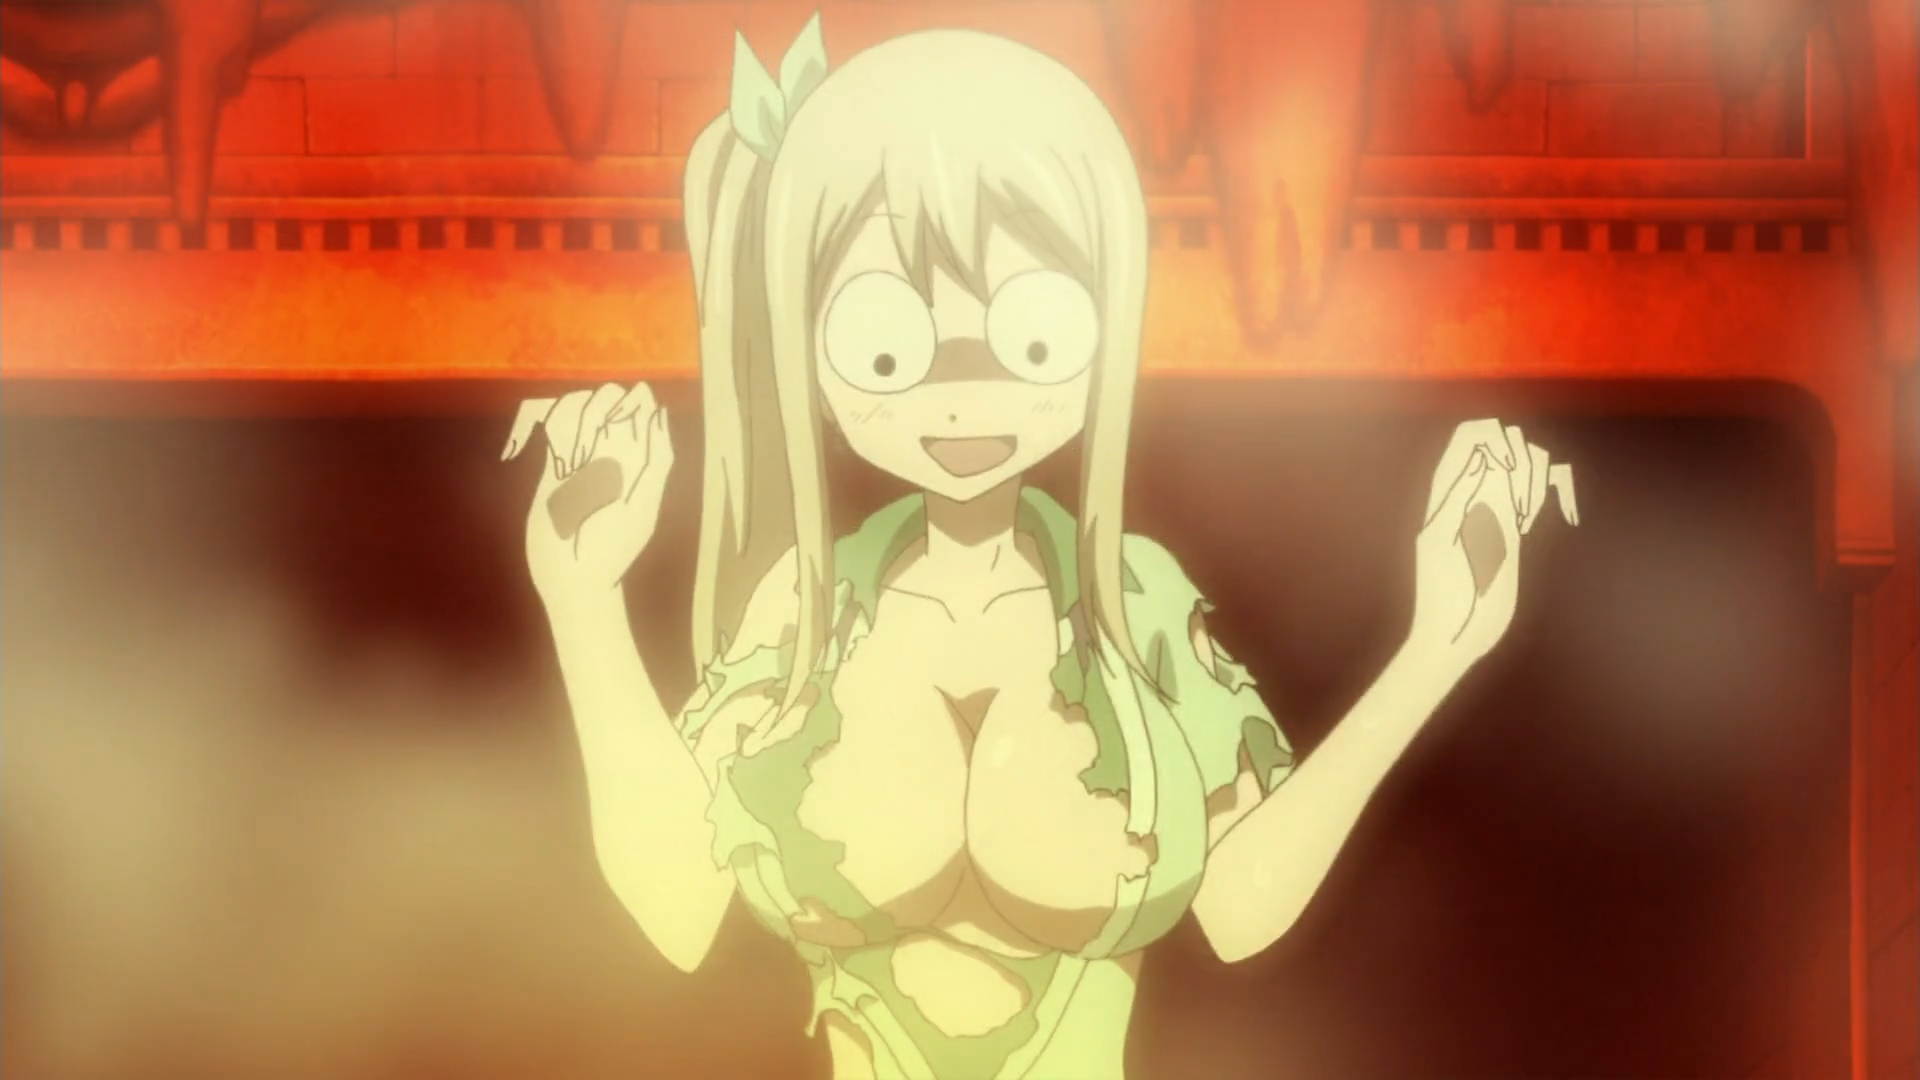 [HorribleSubs] Fairy Tail S2 - 101 [1080p]_001_29309